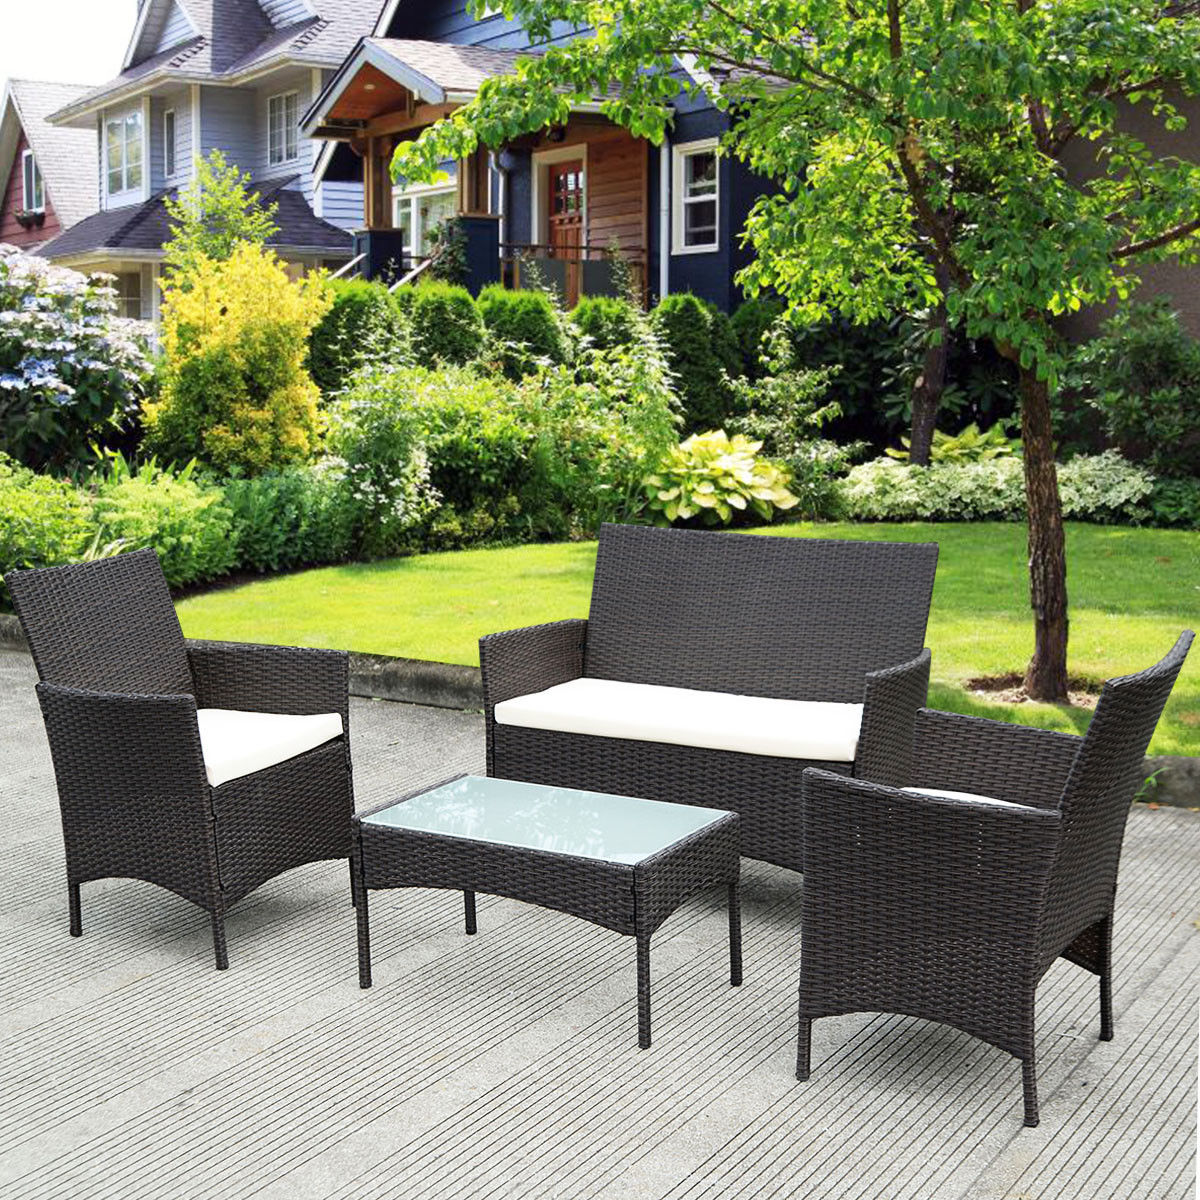 outside patio furniture costway 4 pc patio rattan wicker chair sofa table set 12716